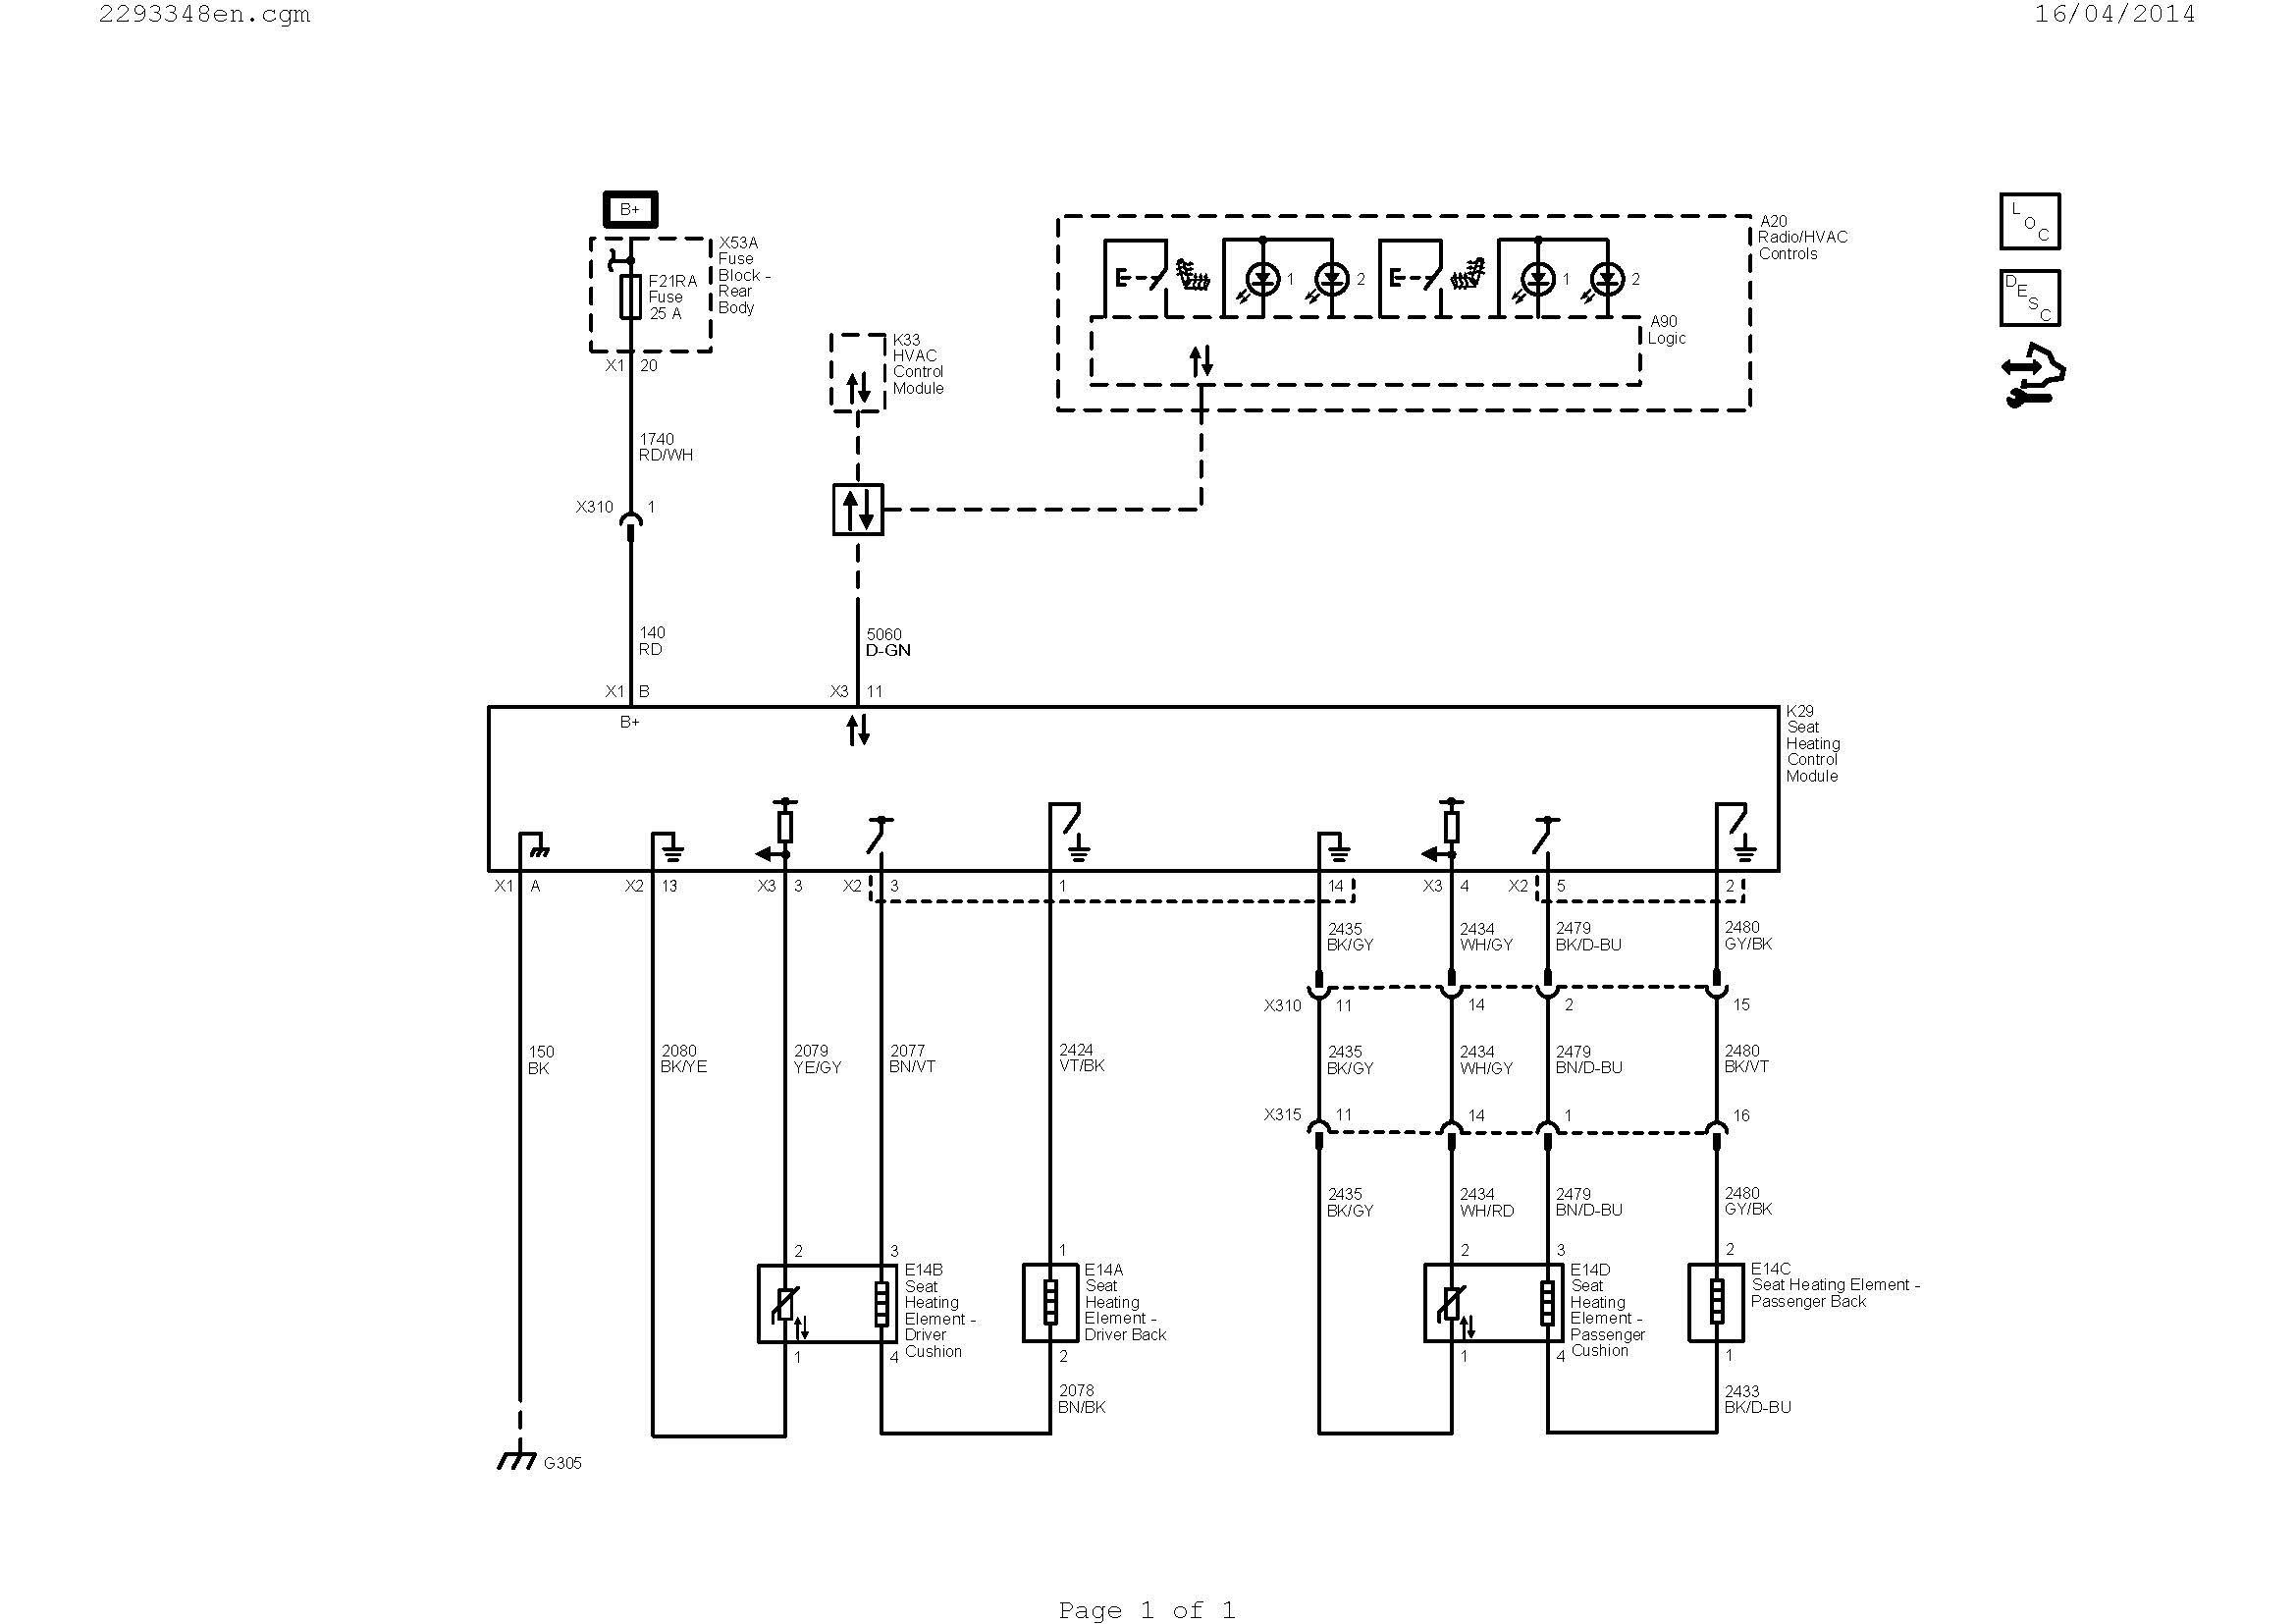 nest wiring diagram Collection-7 wire thermostat wiring diagram Download Wiring A Ac Thermostat Diagram New Wiring Diagram Ac 6-g